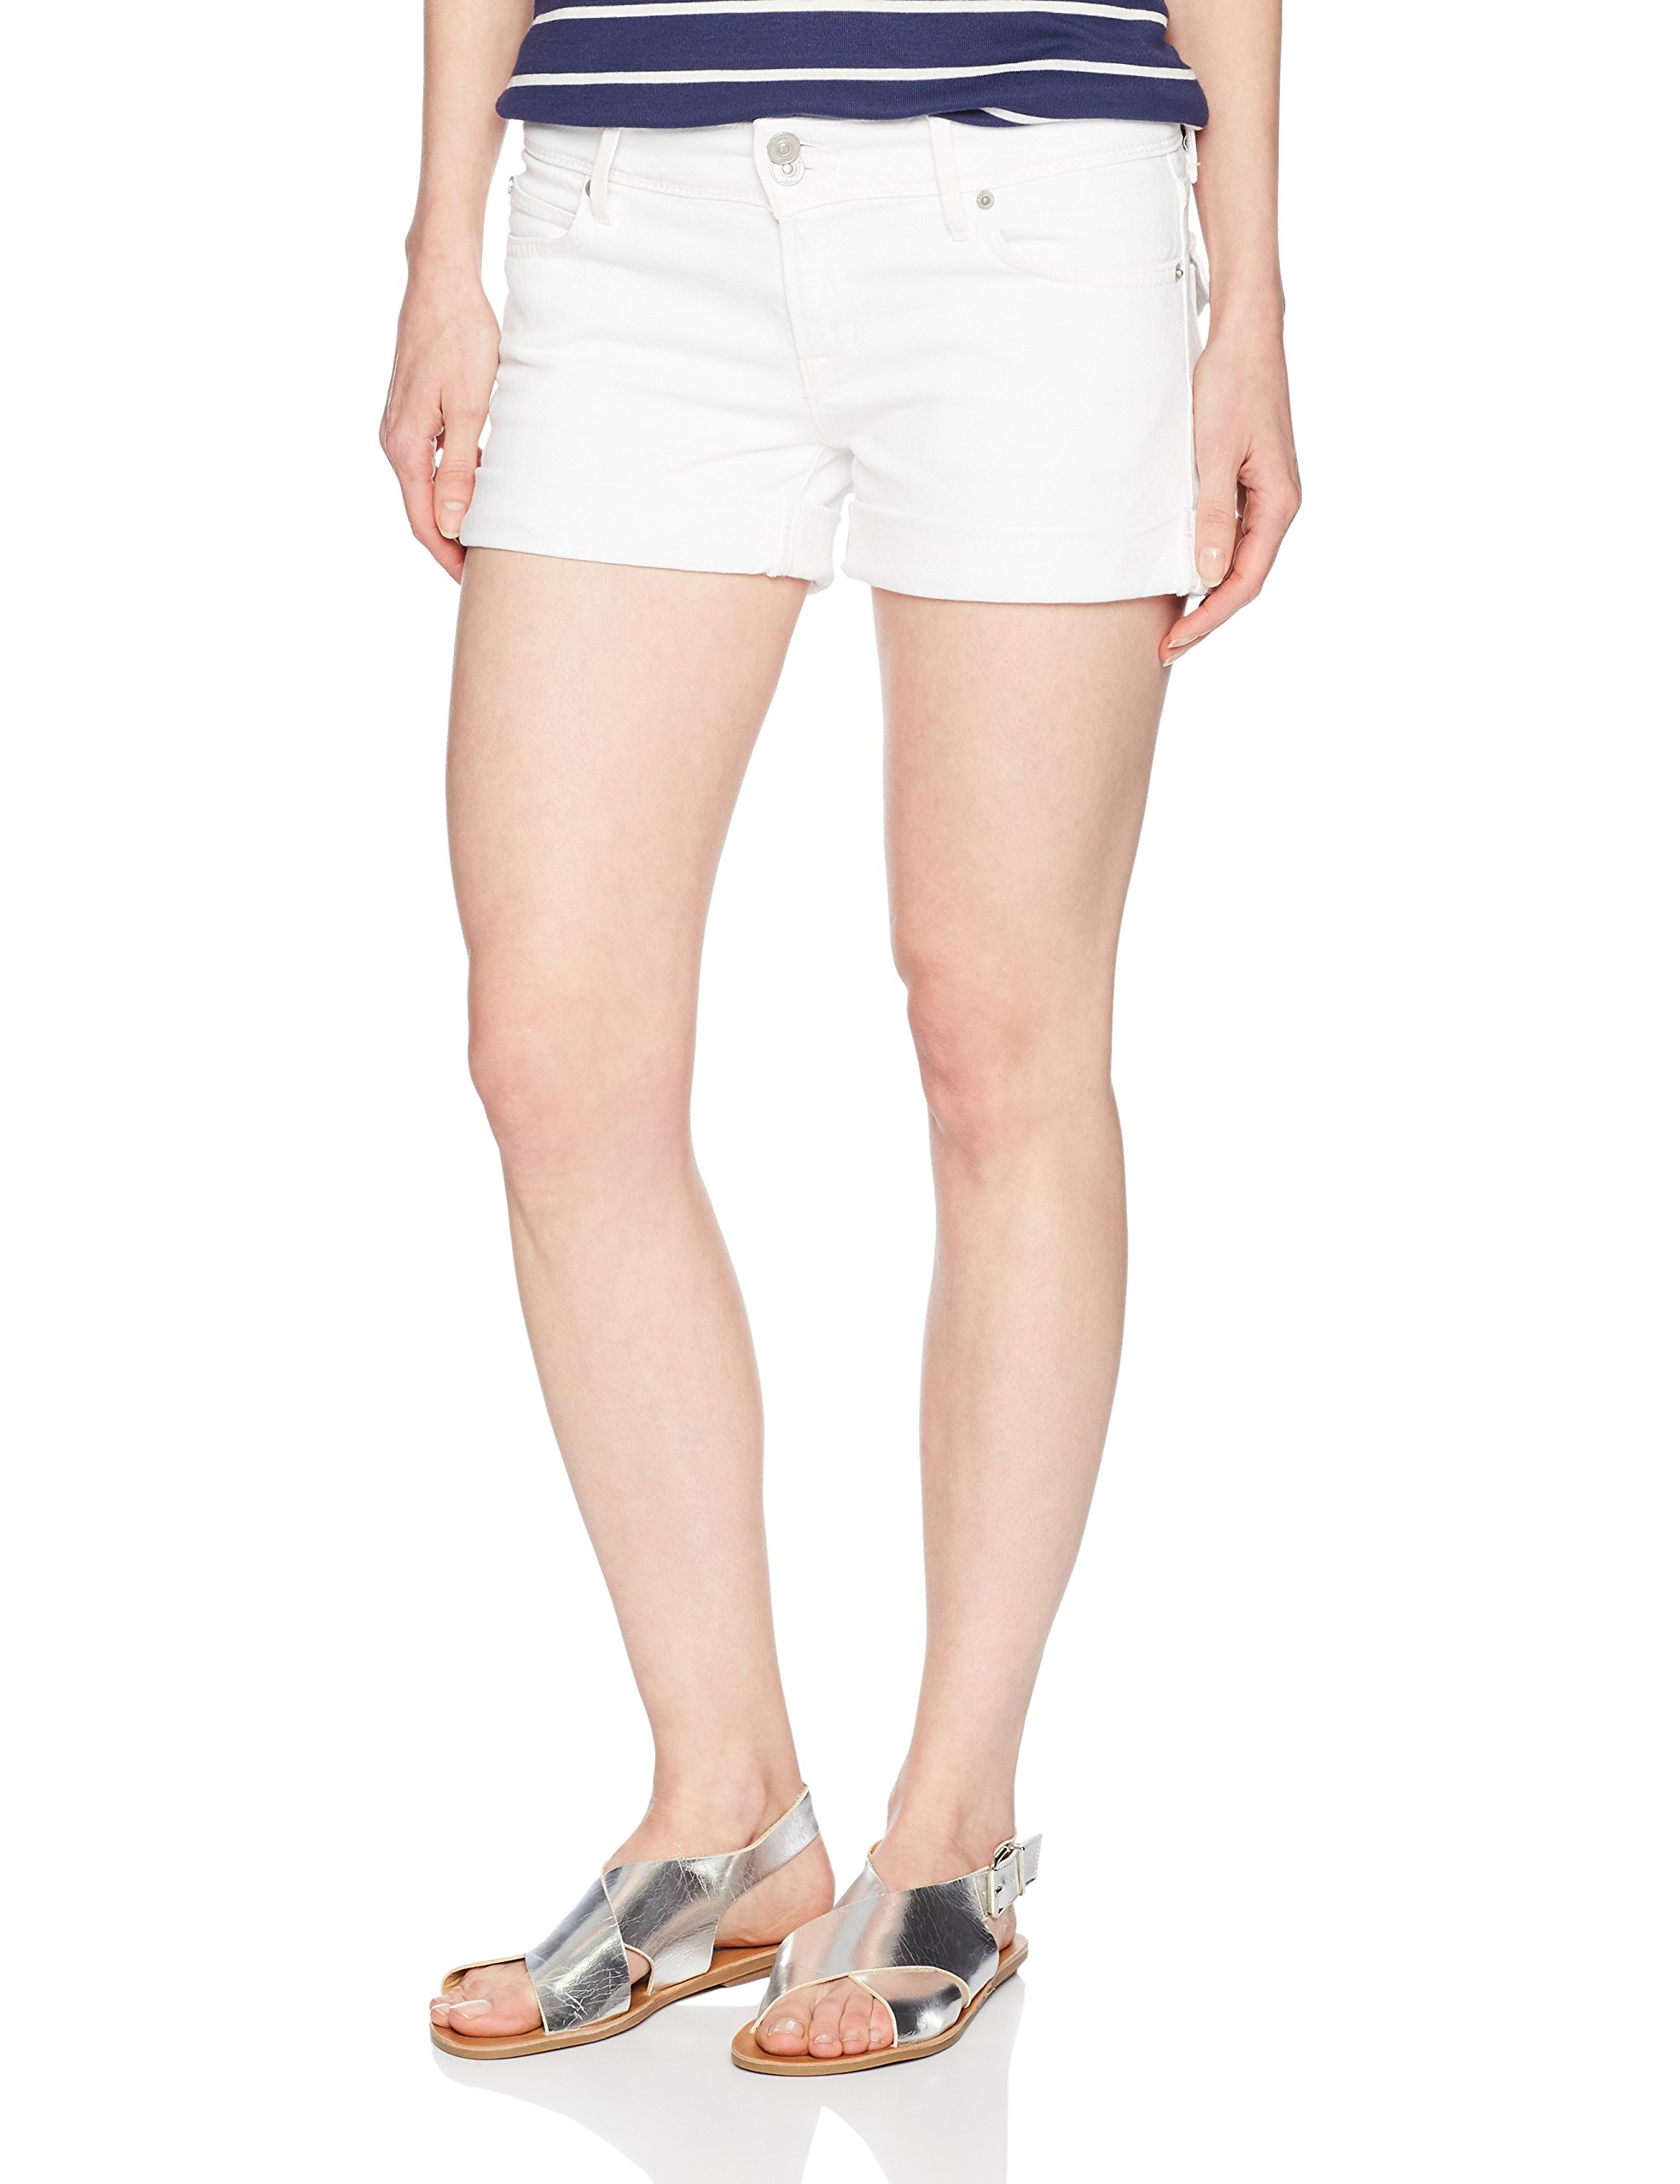 Hudson Jeans Women's Croxley Mid Thigh Flap Pocket Jean Short, White, 27